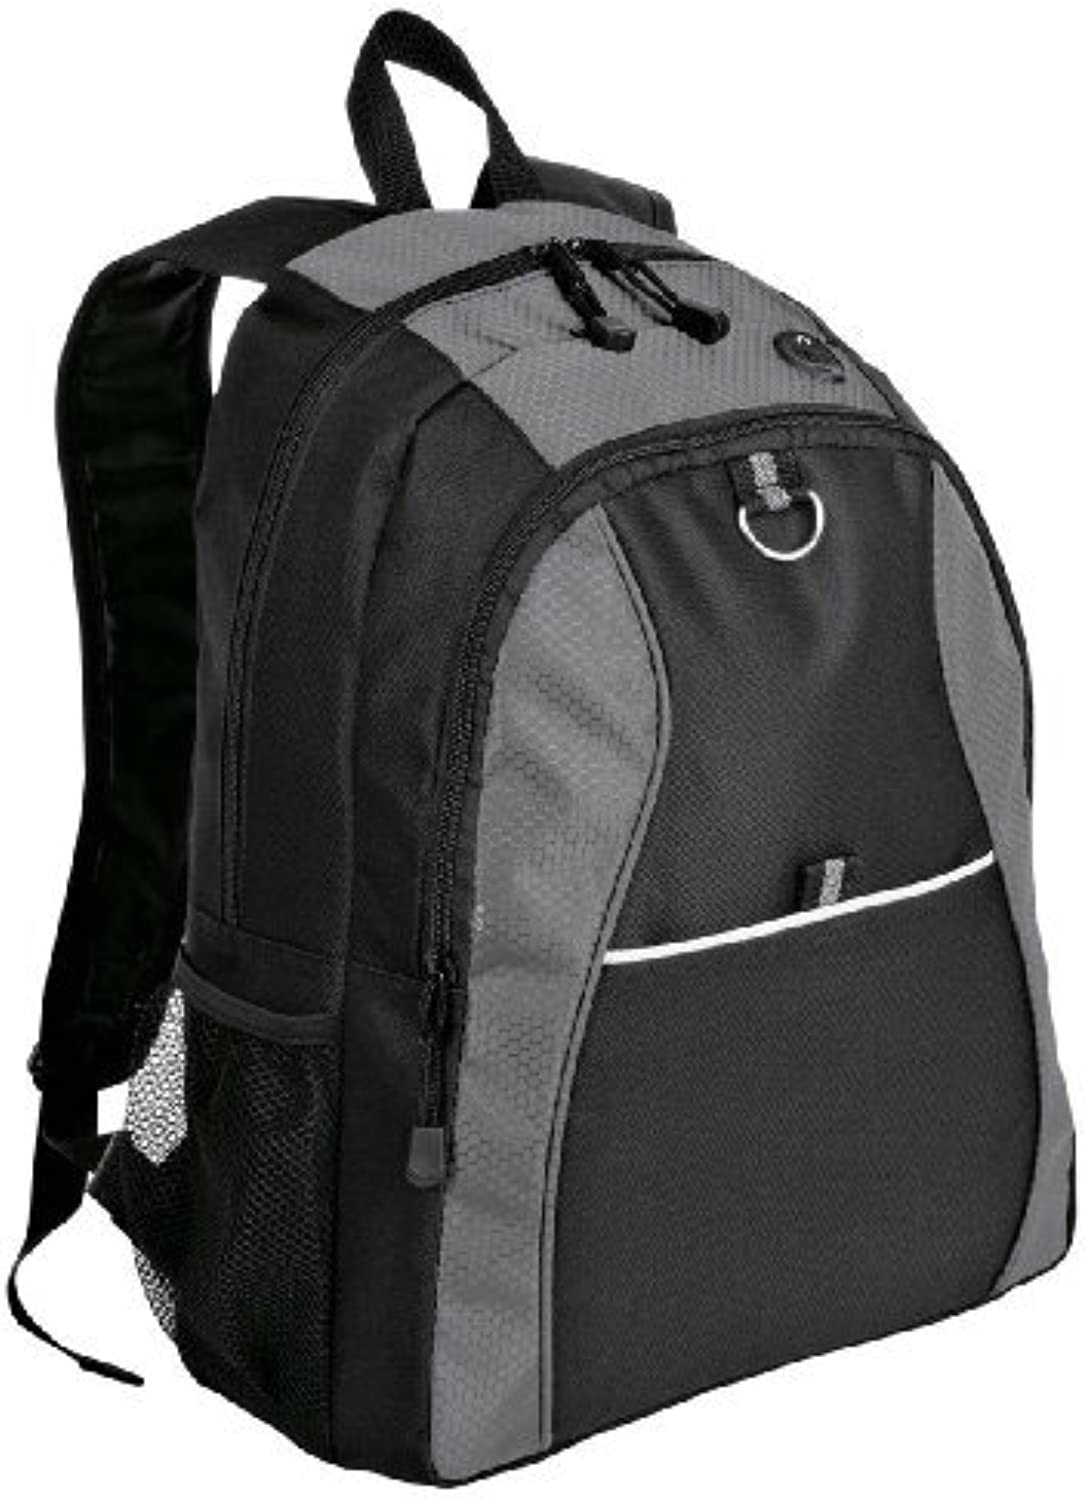 Port & Company Improved Contrast Honeycomb Backpack Bag (Grey Black) by Port & Company